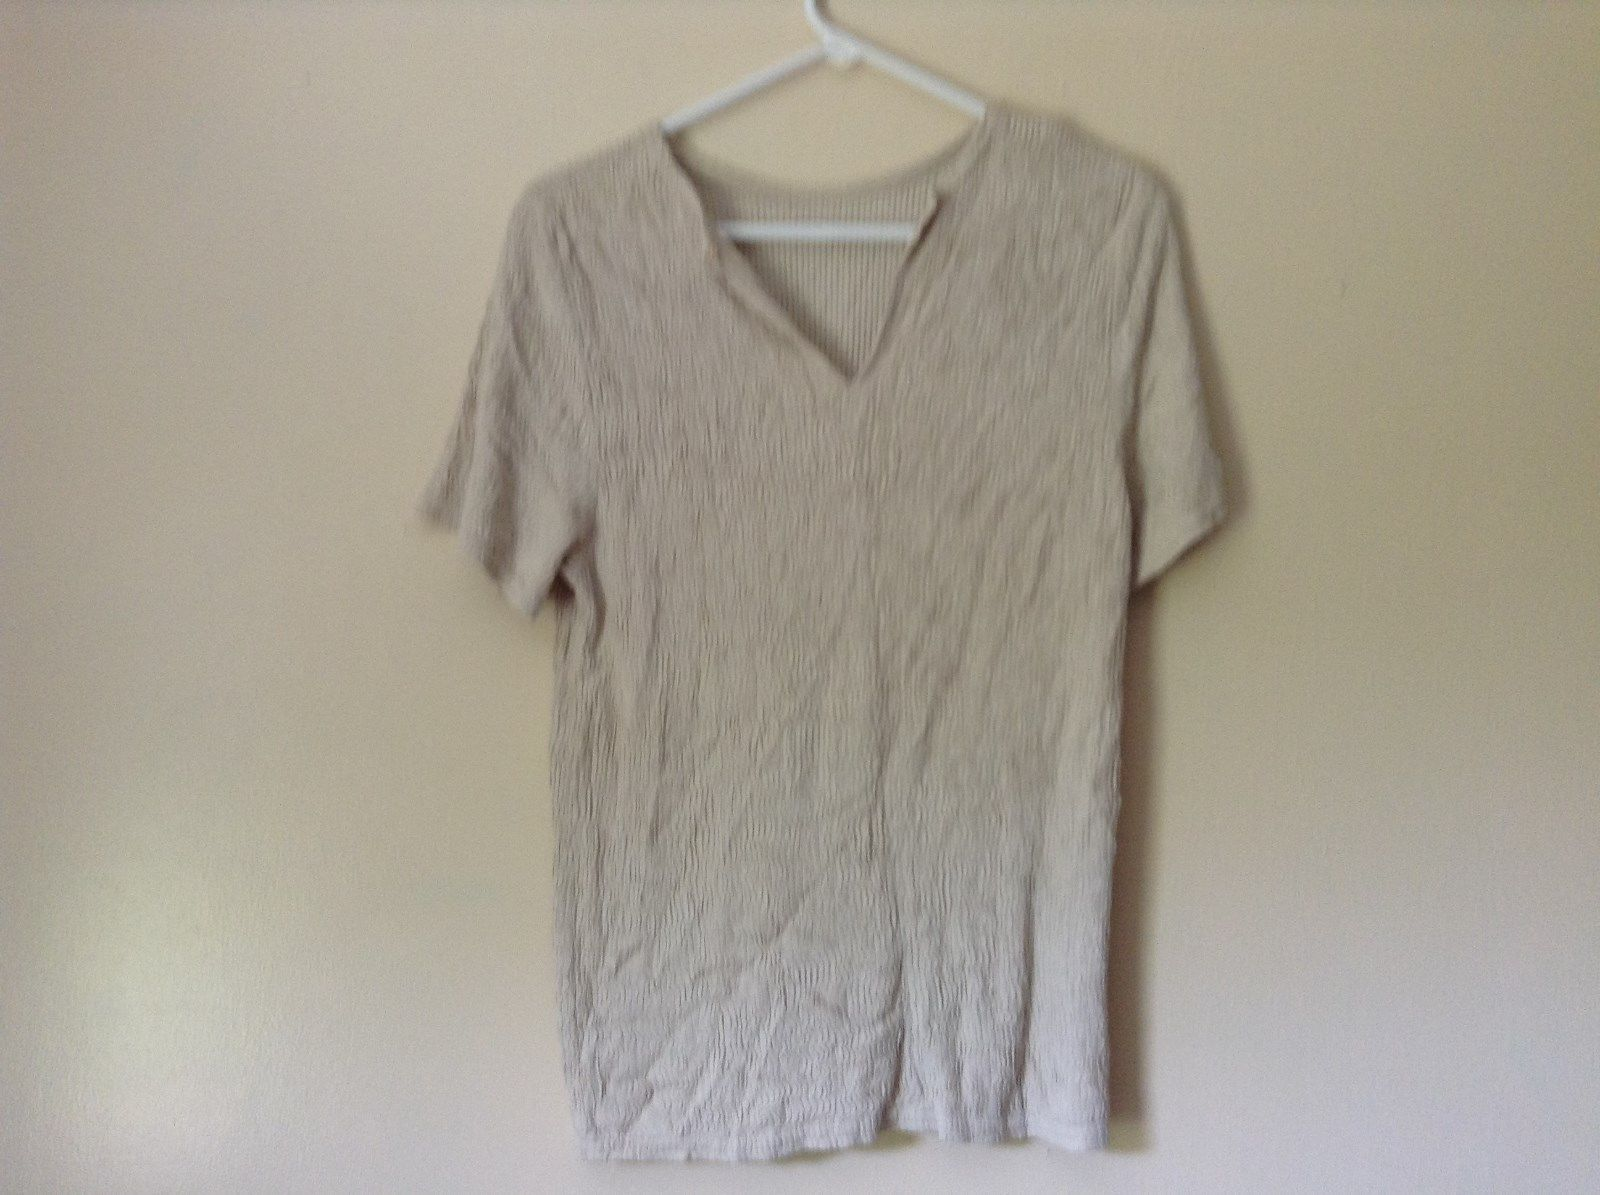 Off White Top V Neck Fancy Short Sleeves Dress Barn Size Medium Made in USA